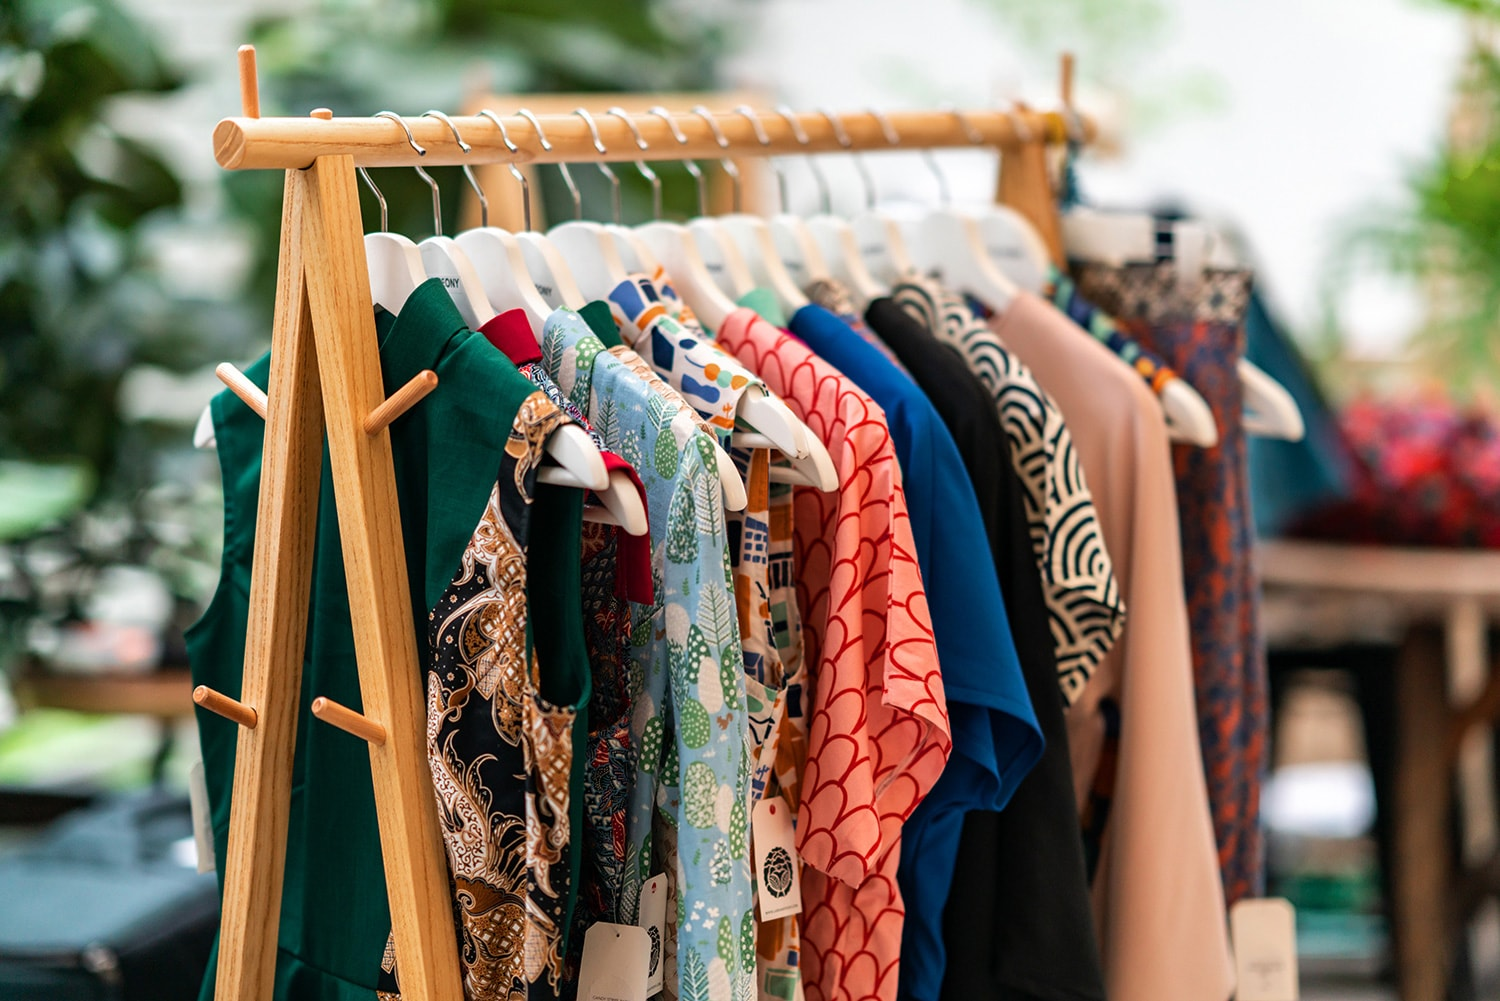 A clothes rack of cheongsams from Lack & Peony